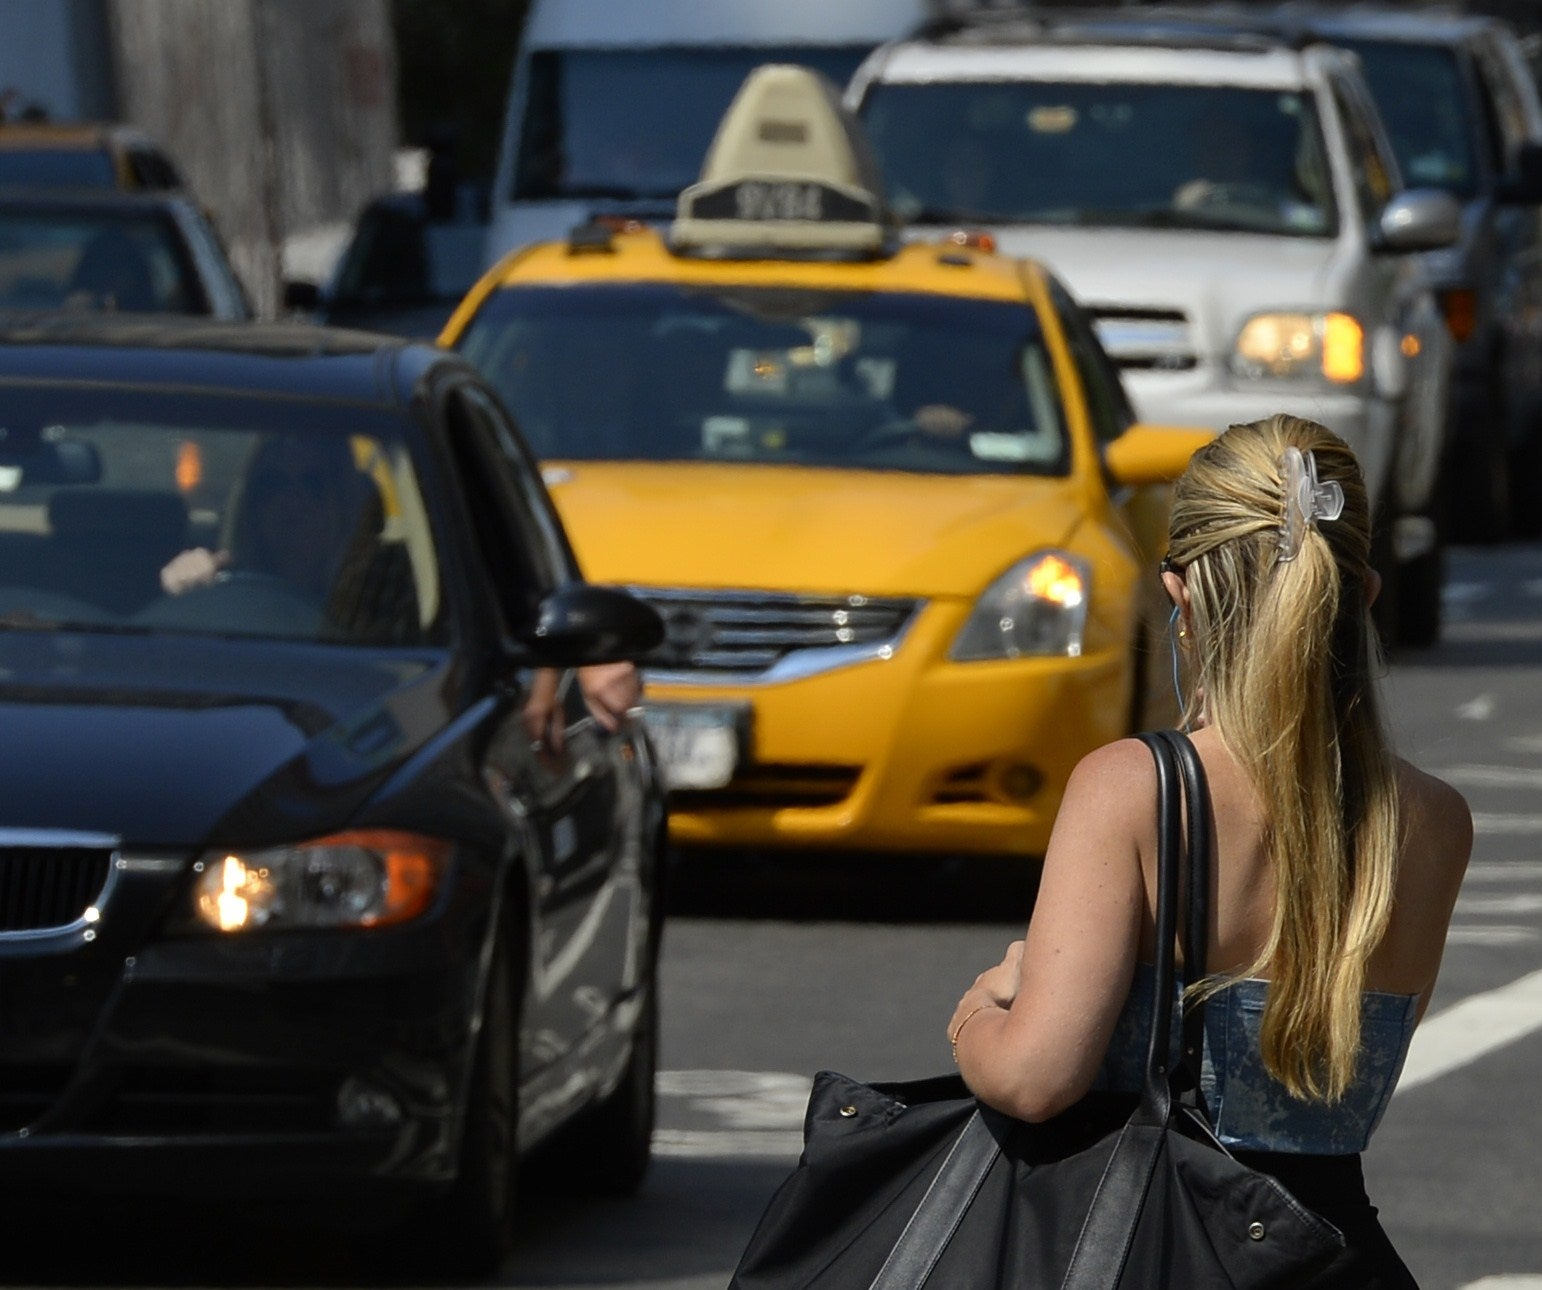 Taxi To Jfk >> People Keep Getting Into Strangers' Cars Because They Think It's An Uber